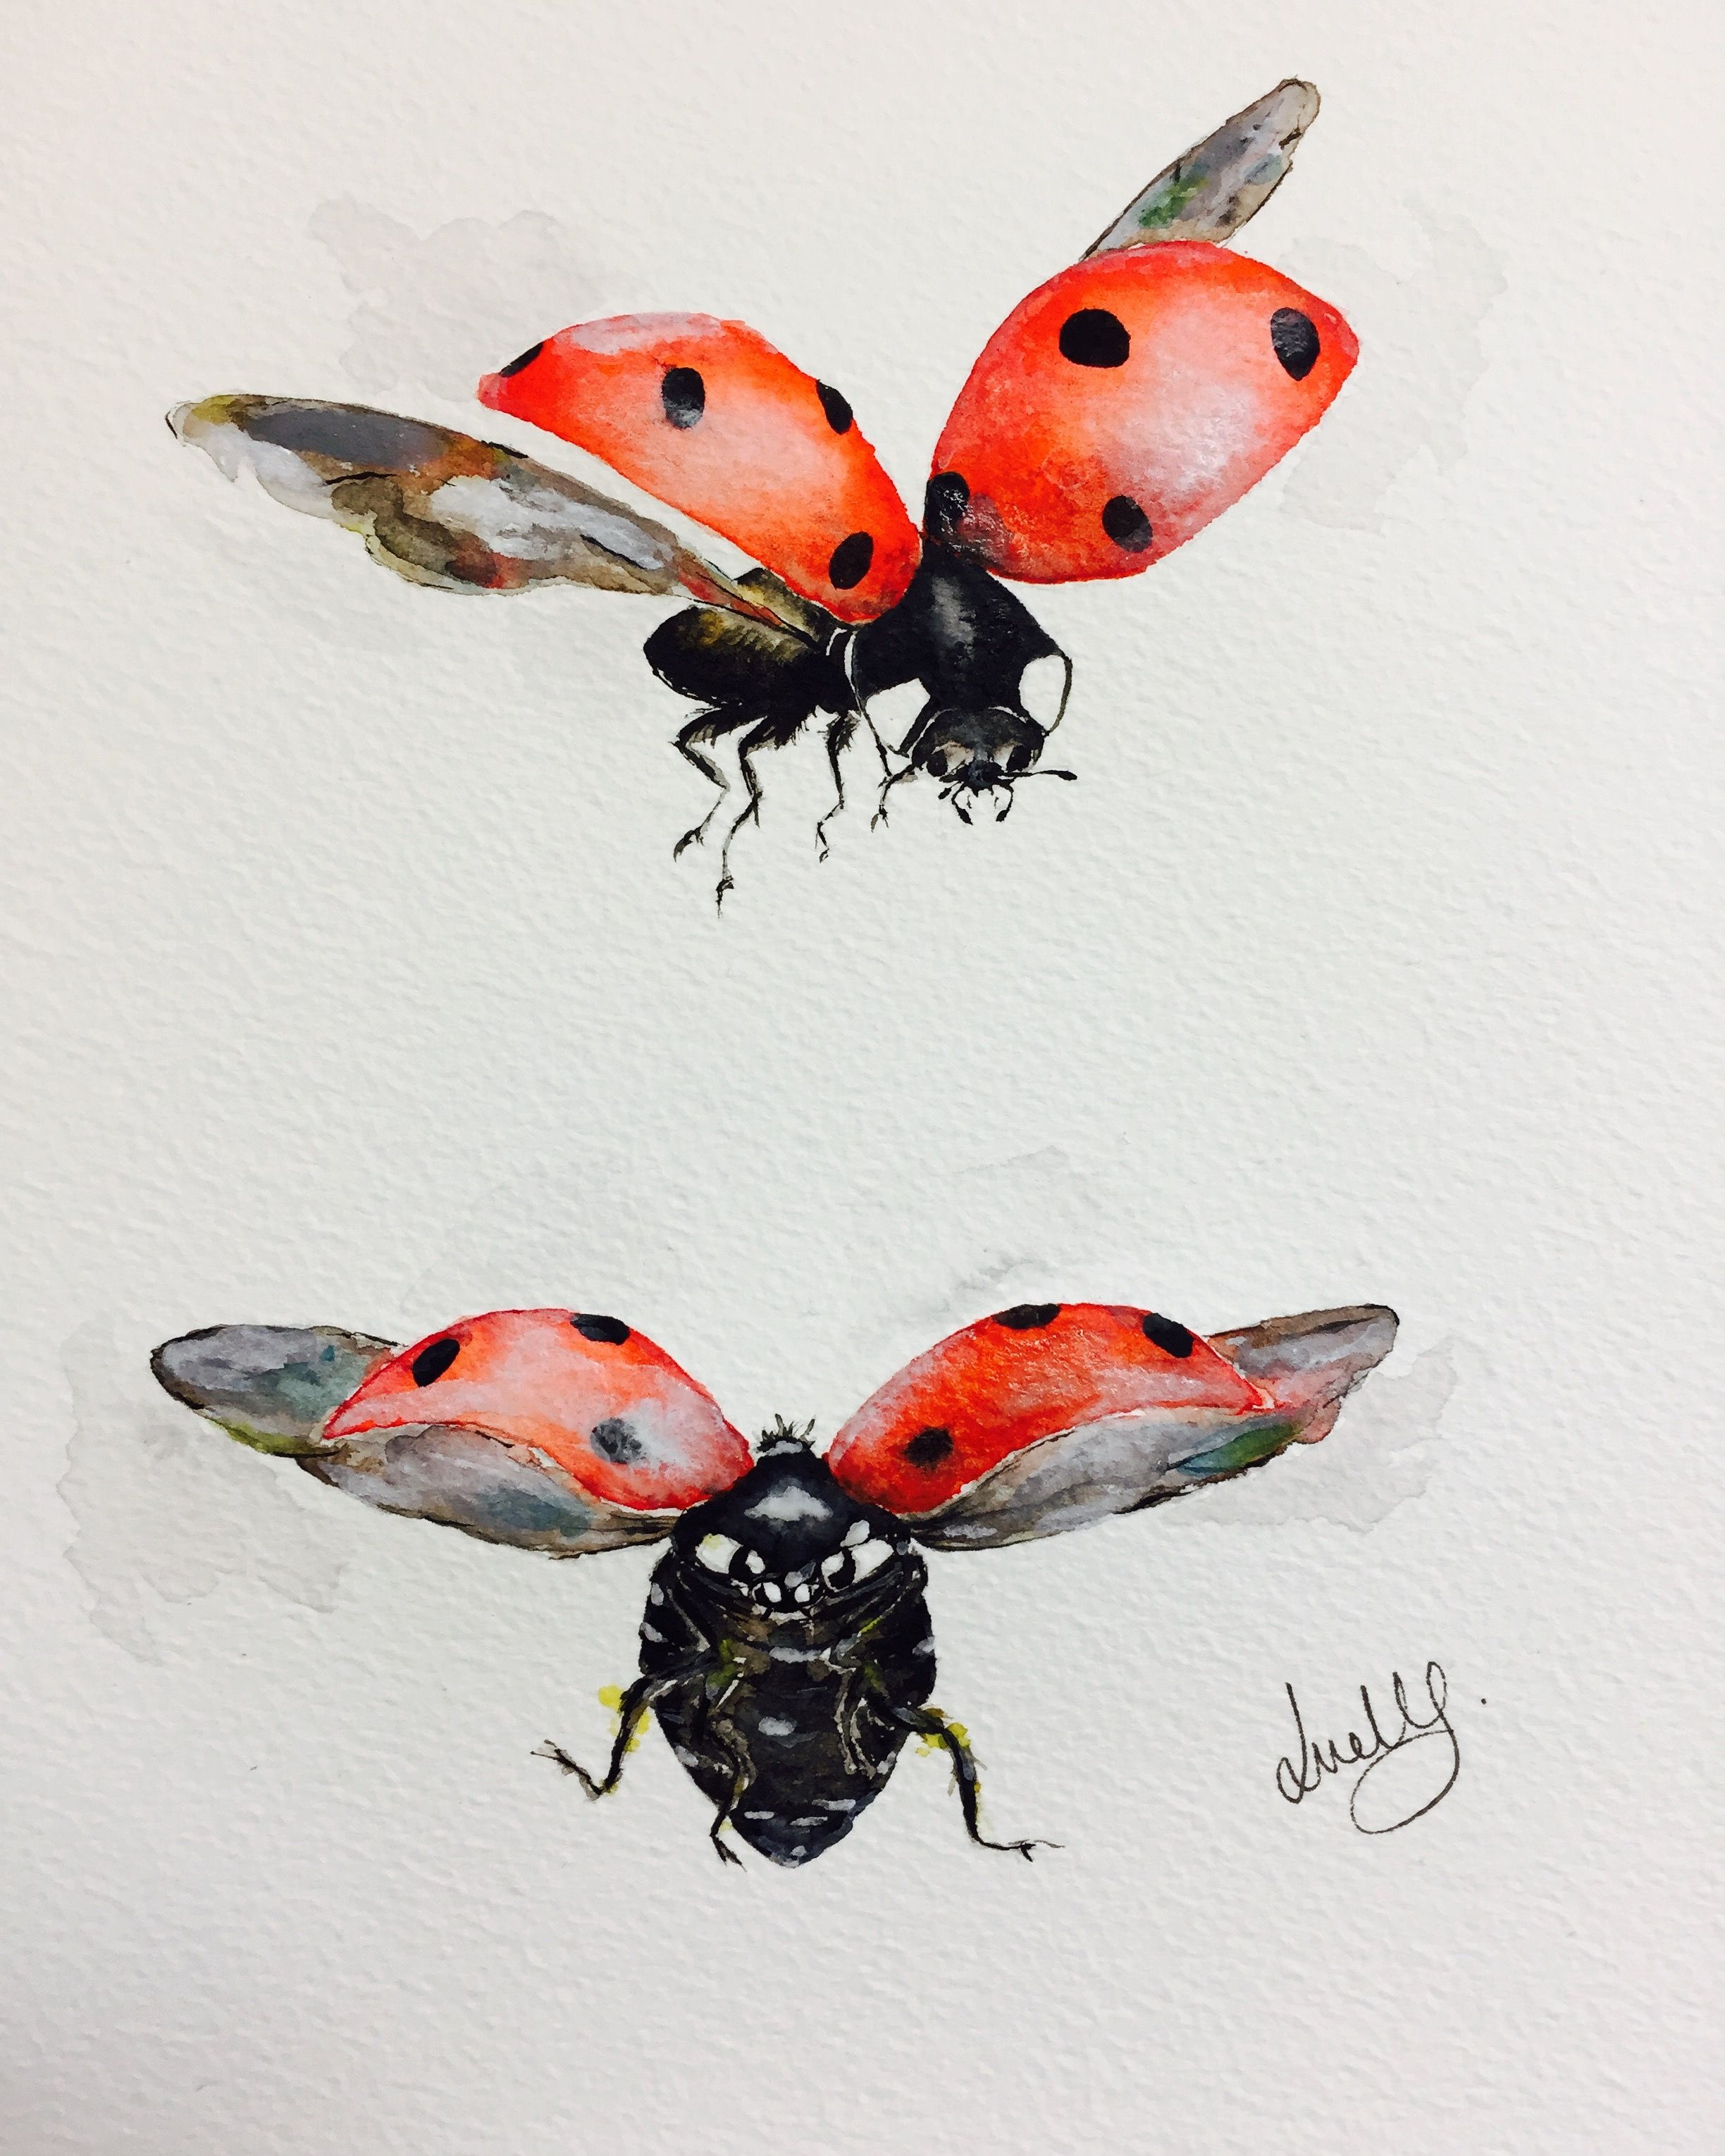 Ladybug Flying Drawing : ladybug, flying, drawing, Flying, Ladybugs, ♣️Fosterginger.Pinterest.ComMore, FOSTERGINGER, PINTEREST, Limitsでこのようなピンがいっ…, Ladybug, Tattoo,, Insect